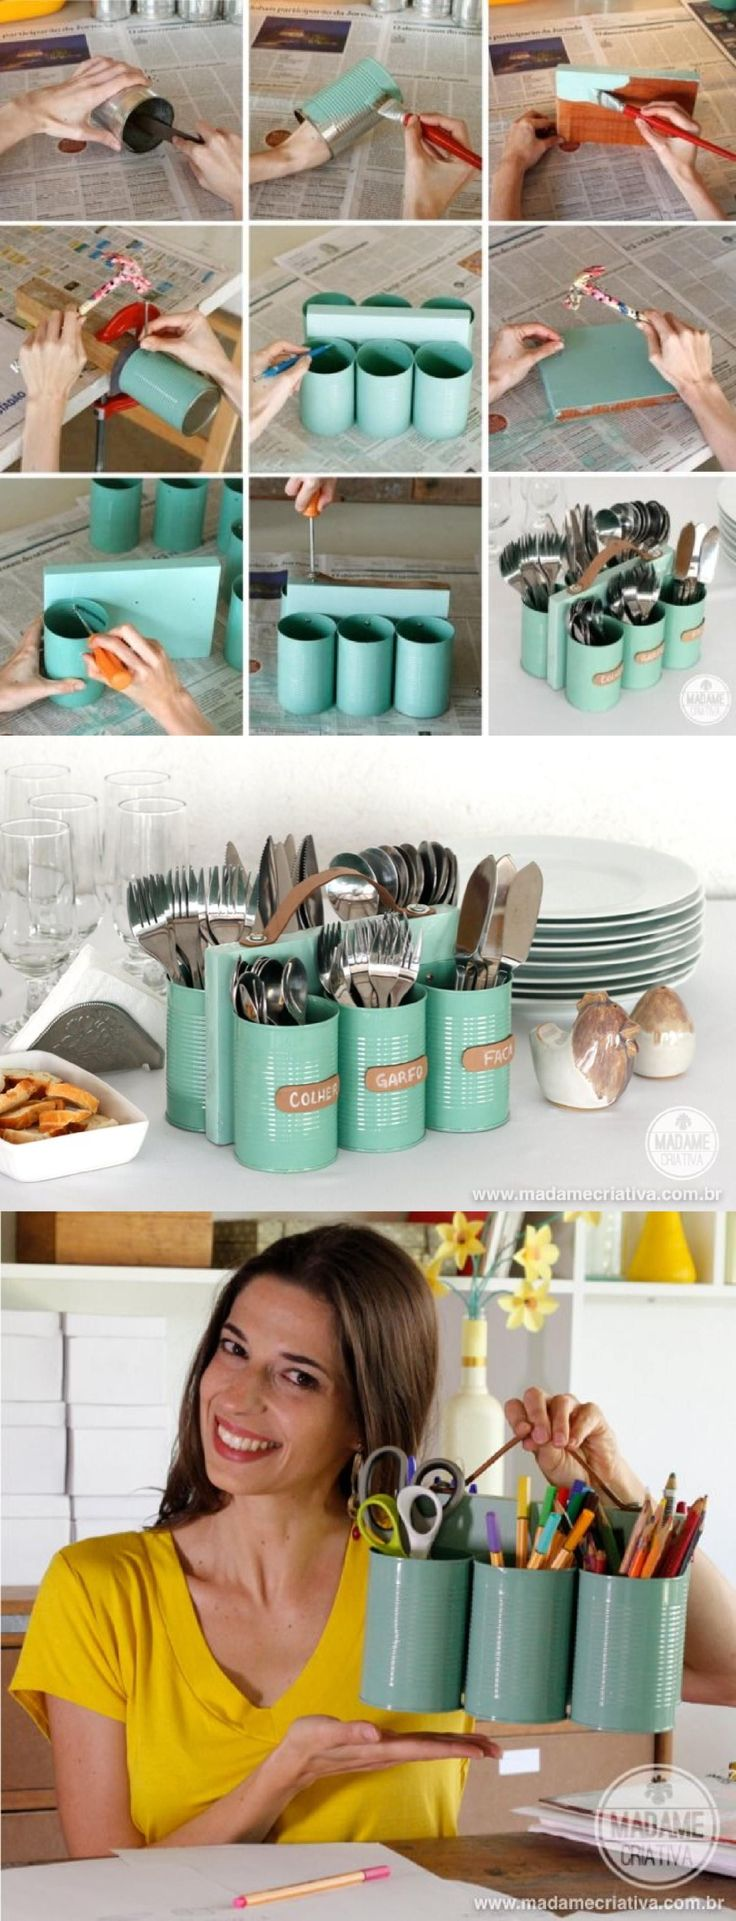 Cutlery holder with tin cans | Porta cubiertos reutilizando latas - Vía madamecriativa.com.br